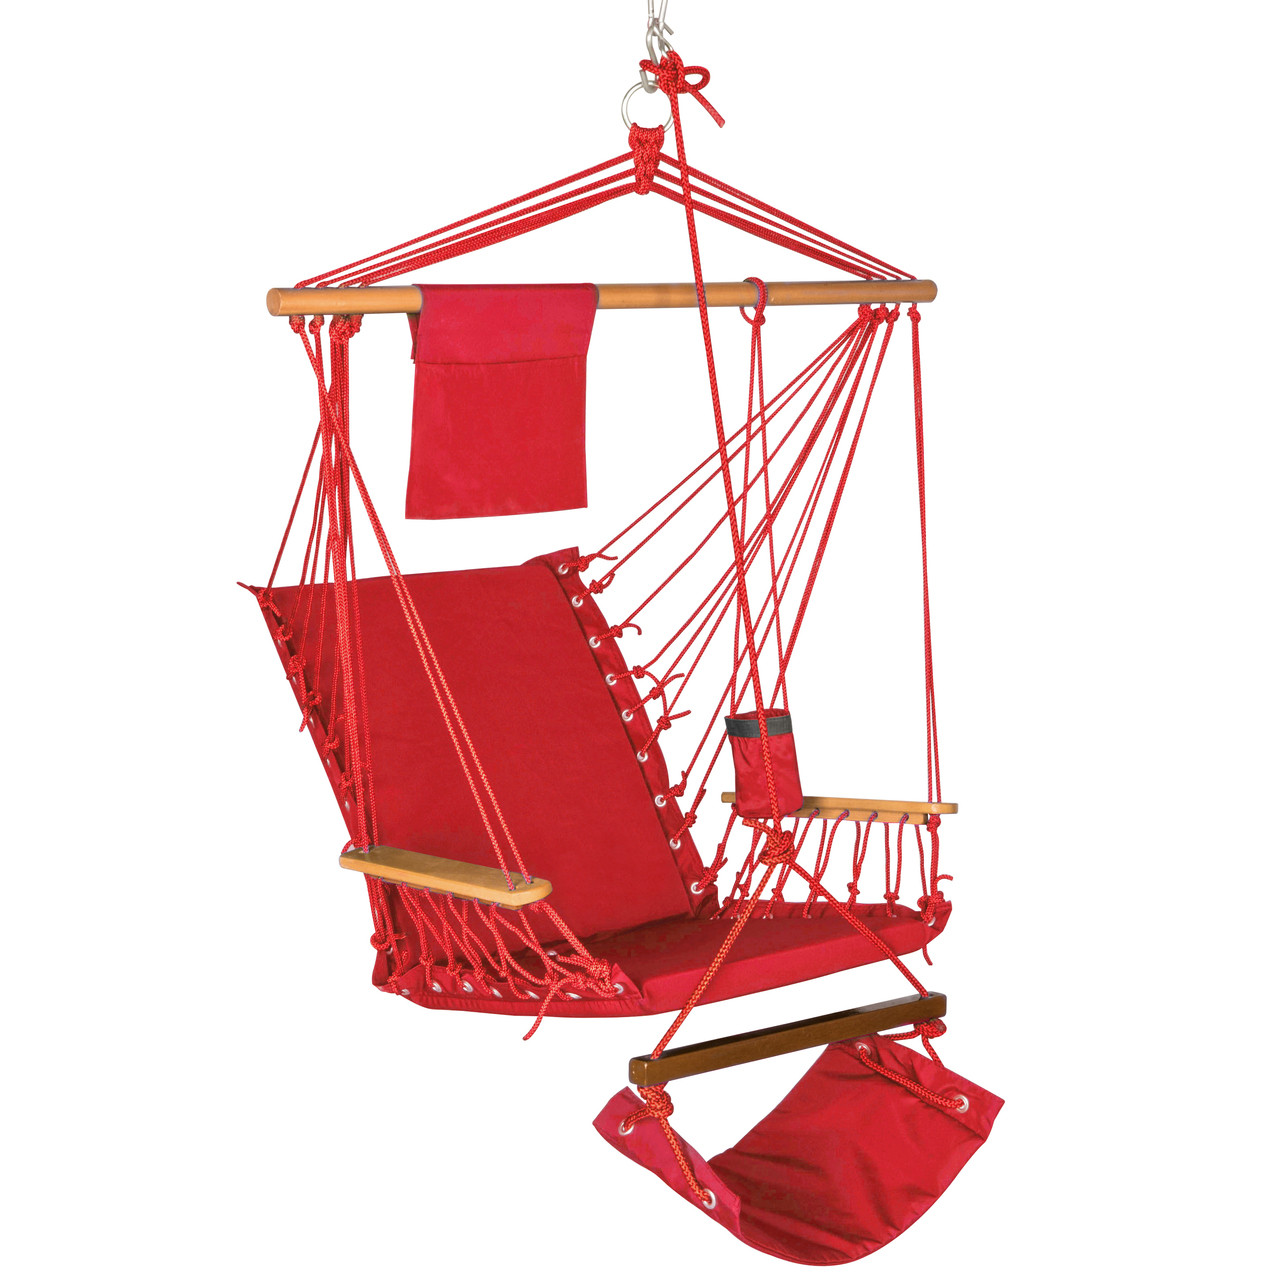 Lazy Daze Hammocks Hanging Rope Chair Cotton Padded Swing Chair Hammock Seat With Cup Holder Footrest Hardware